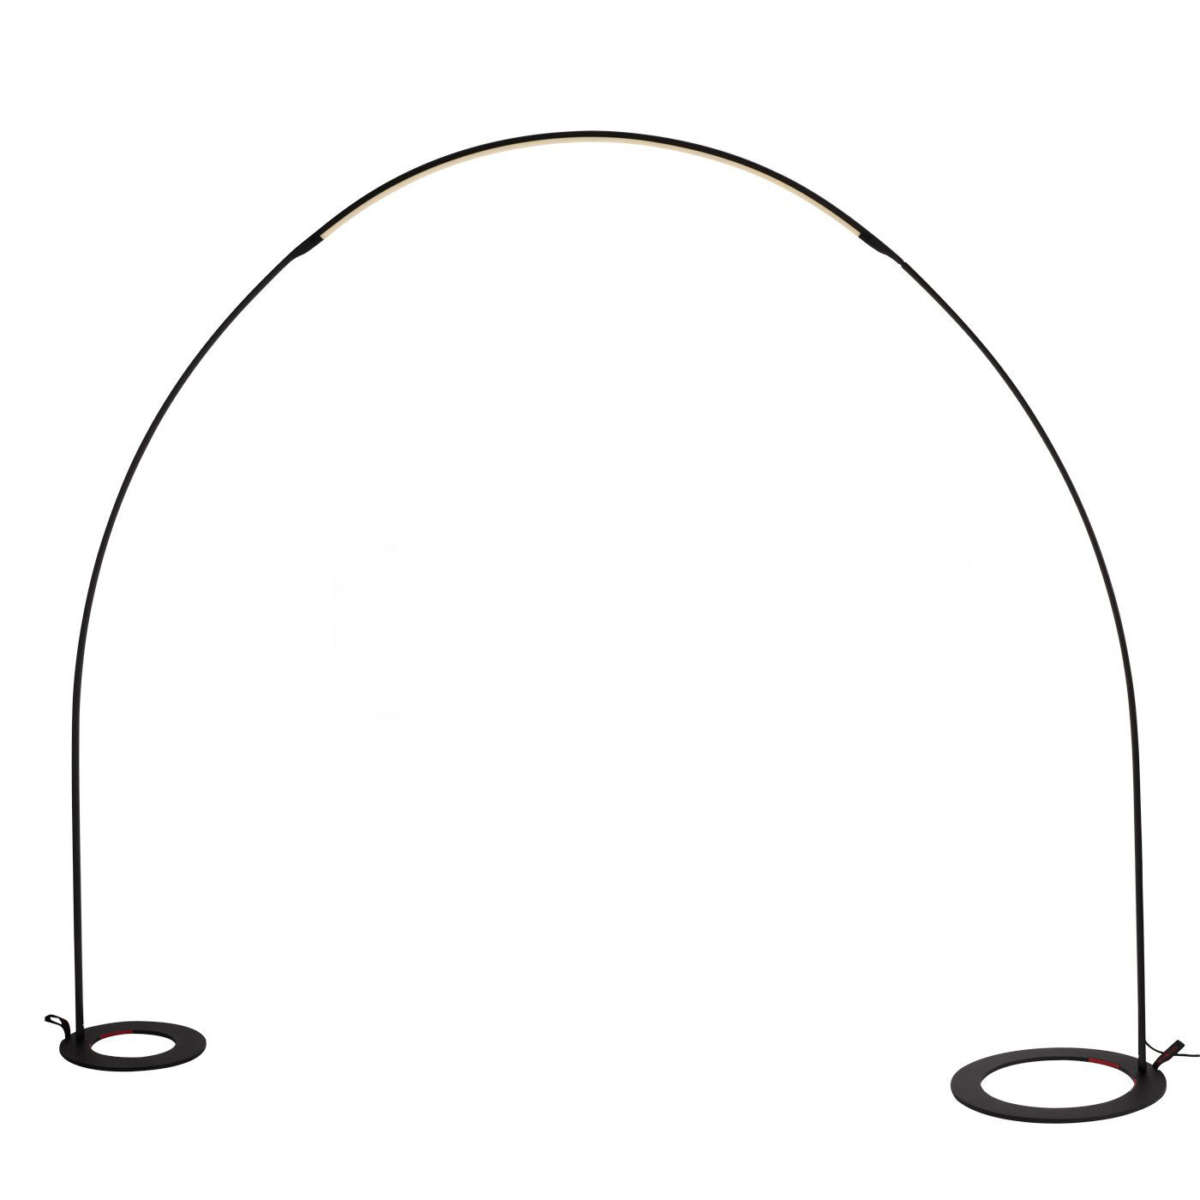 Vibia Halley Floor Lamp Drawing